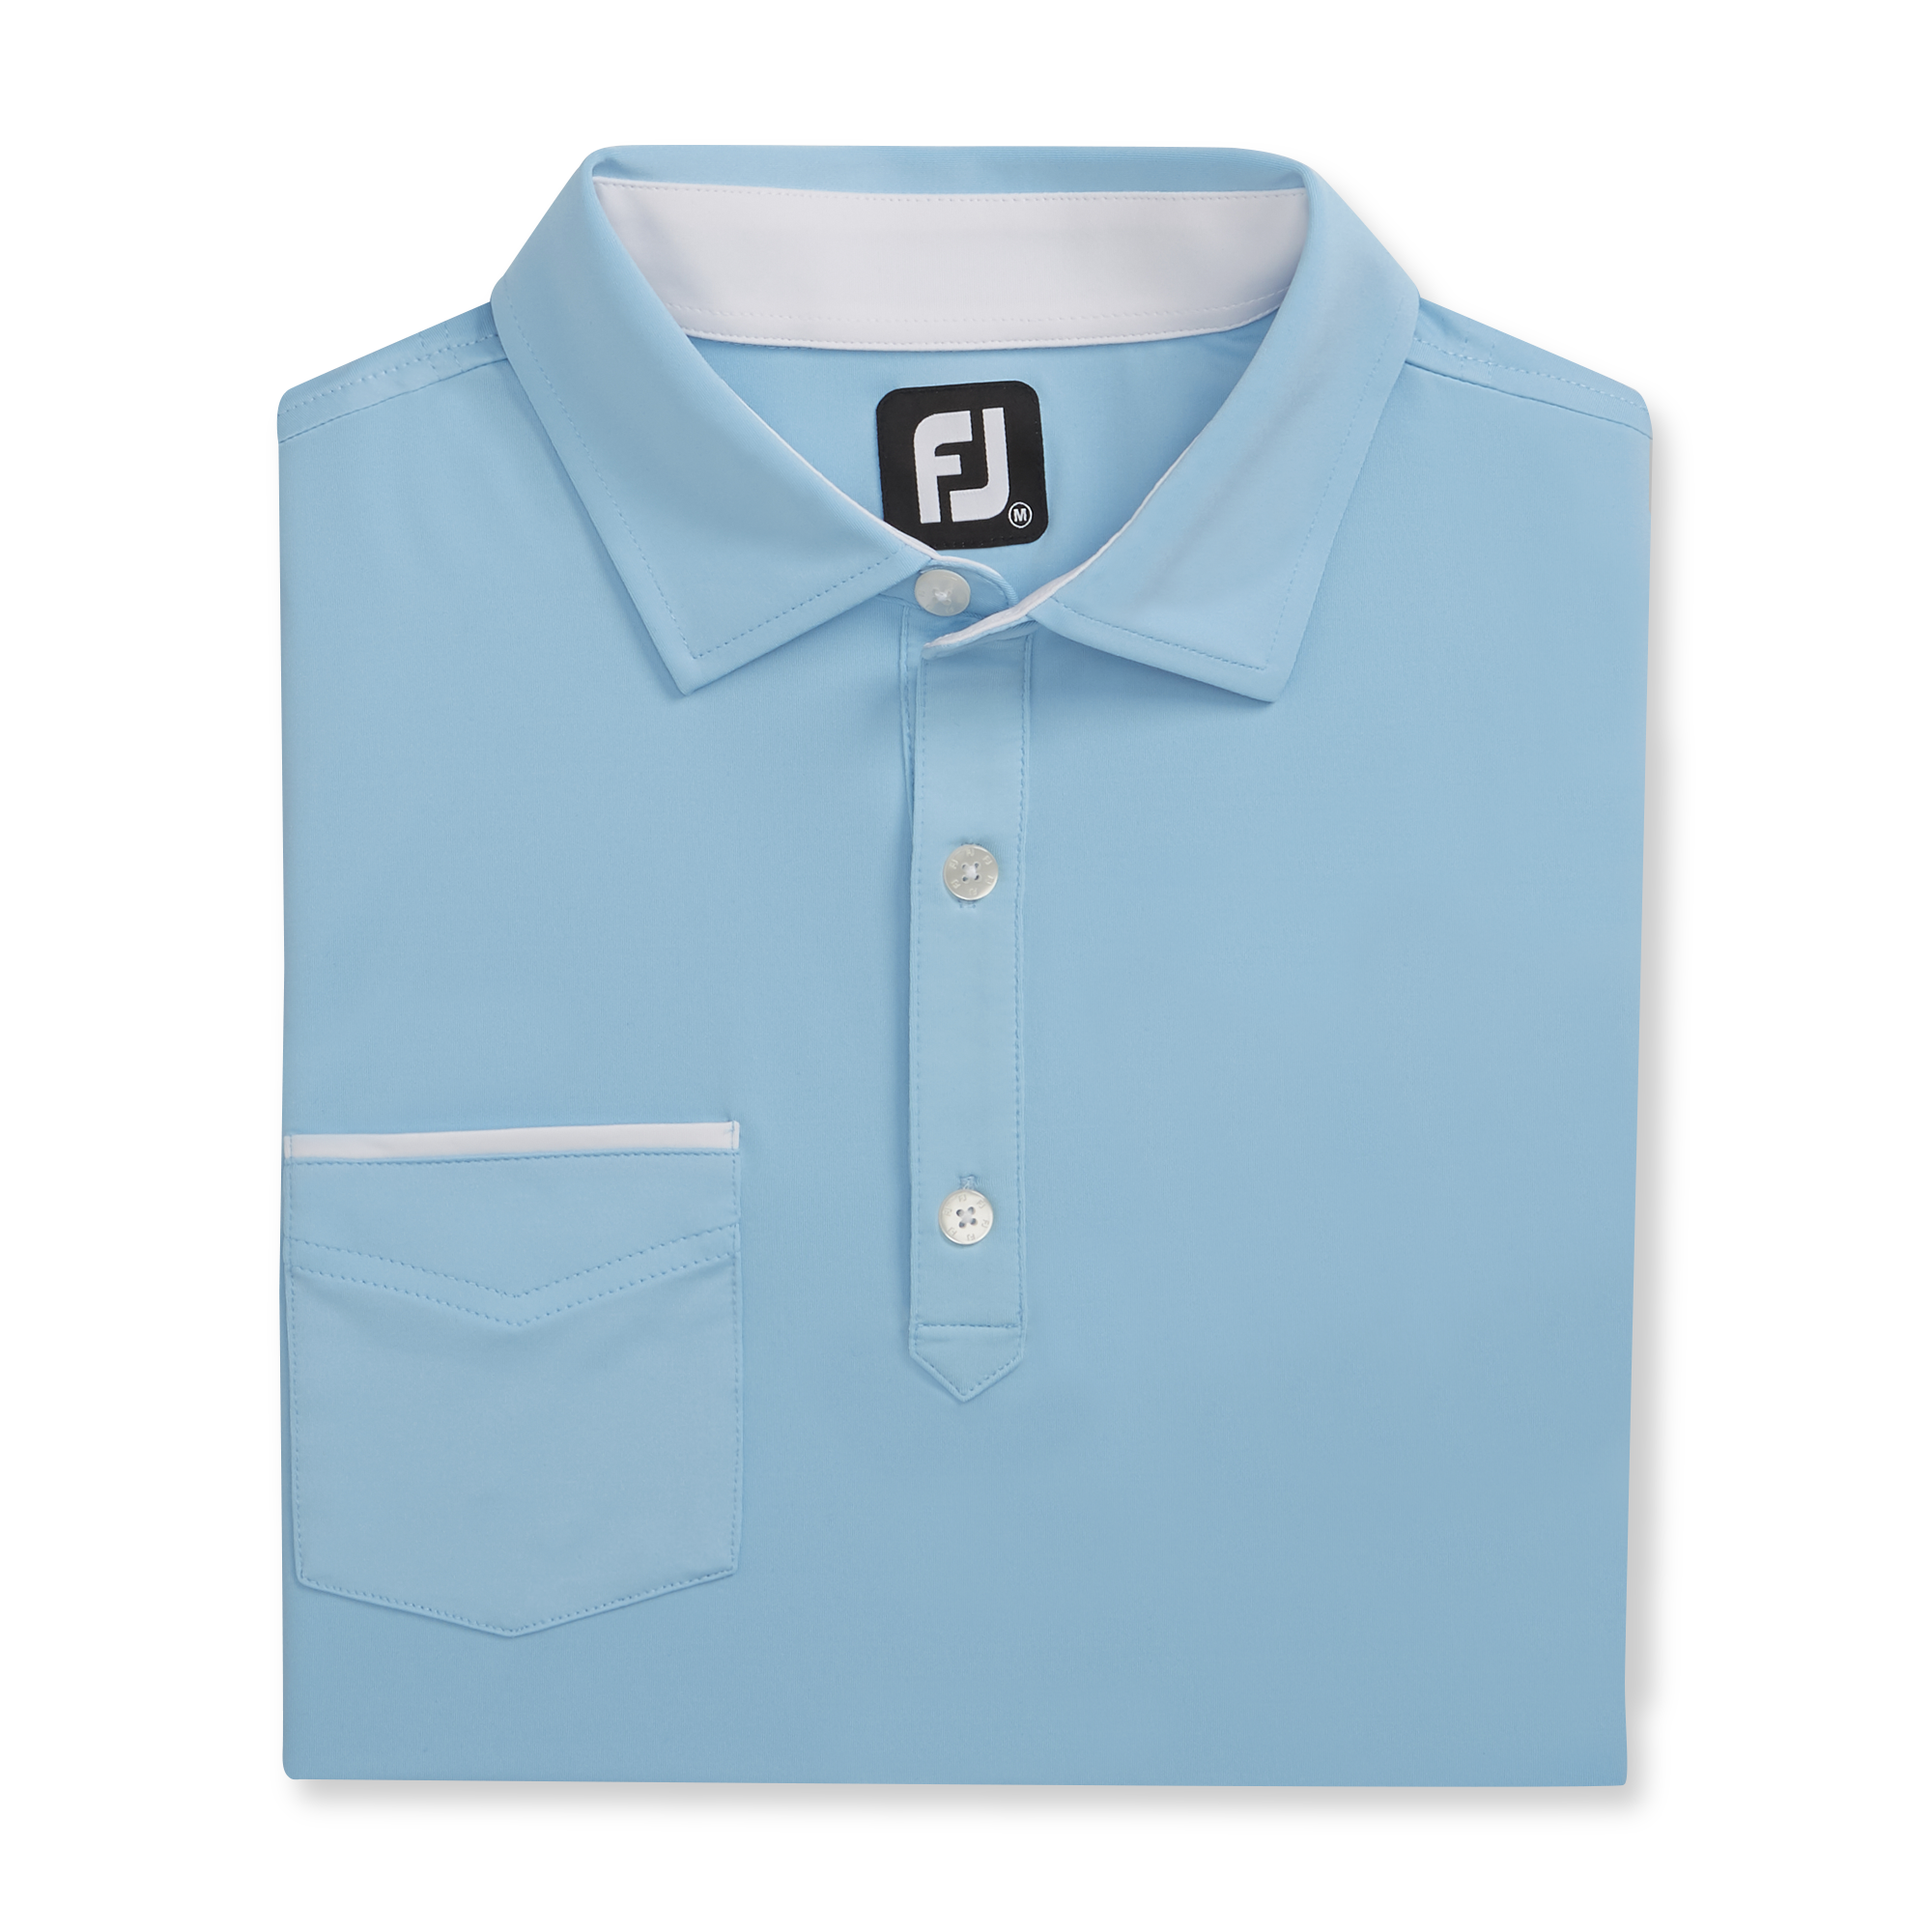 Golf Shirts and Polos for Men   FootJoy